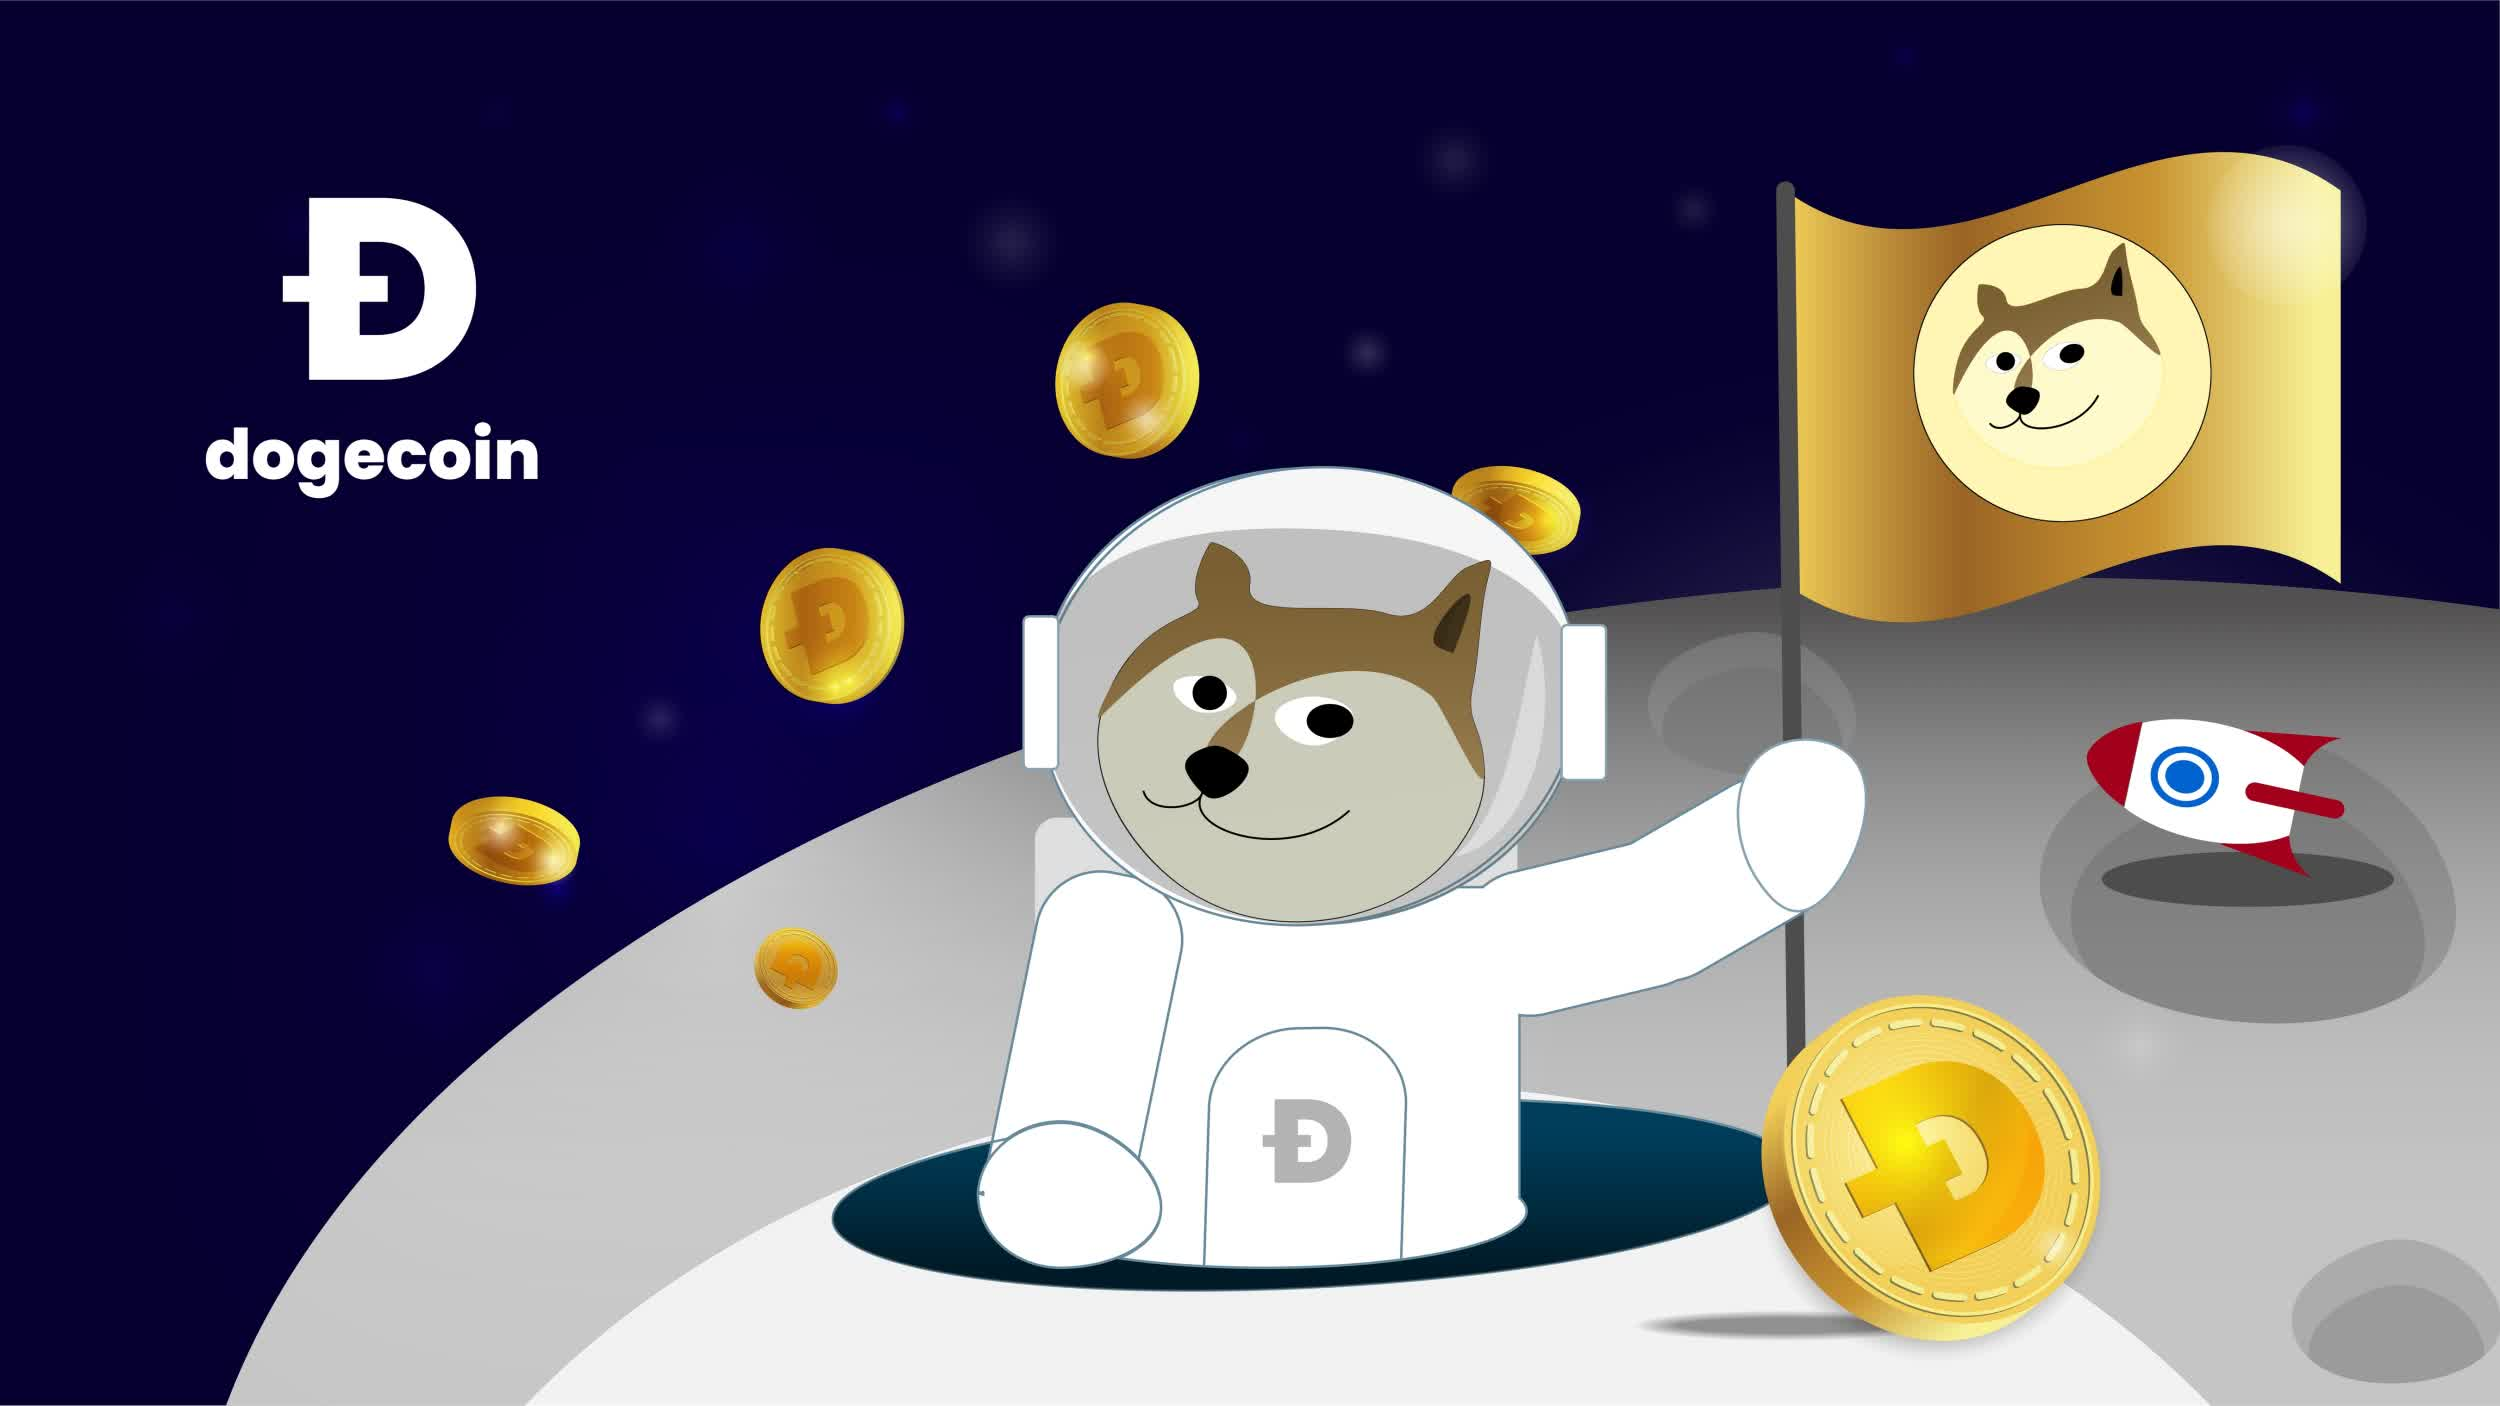 Dogecoin dips following Elon Musk's appearance on Saturday Night Live